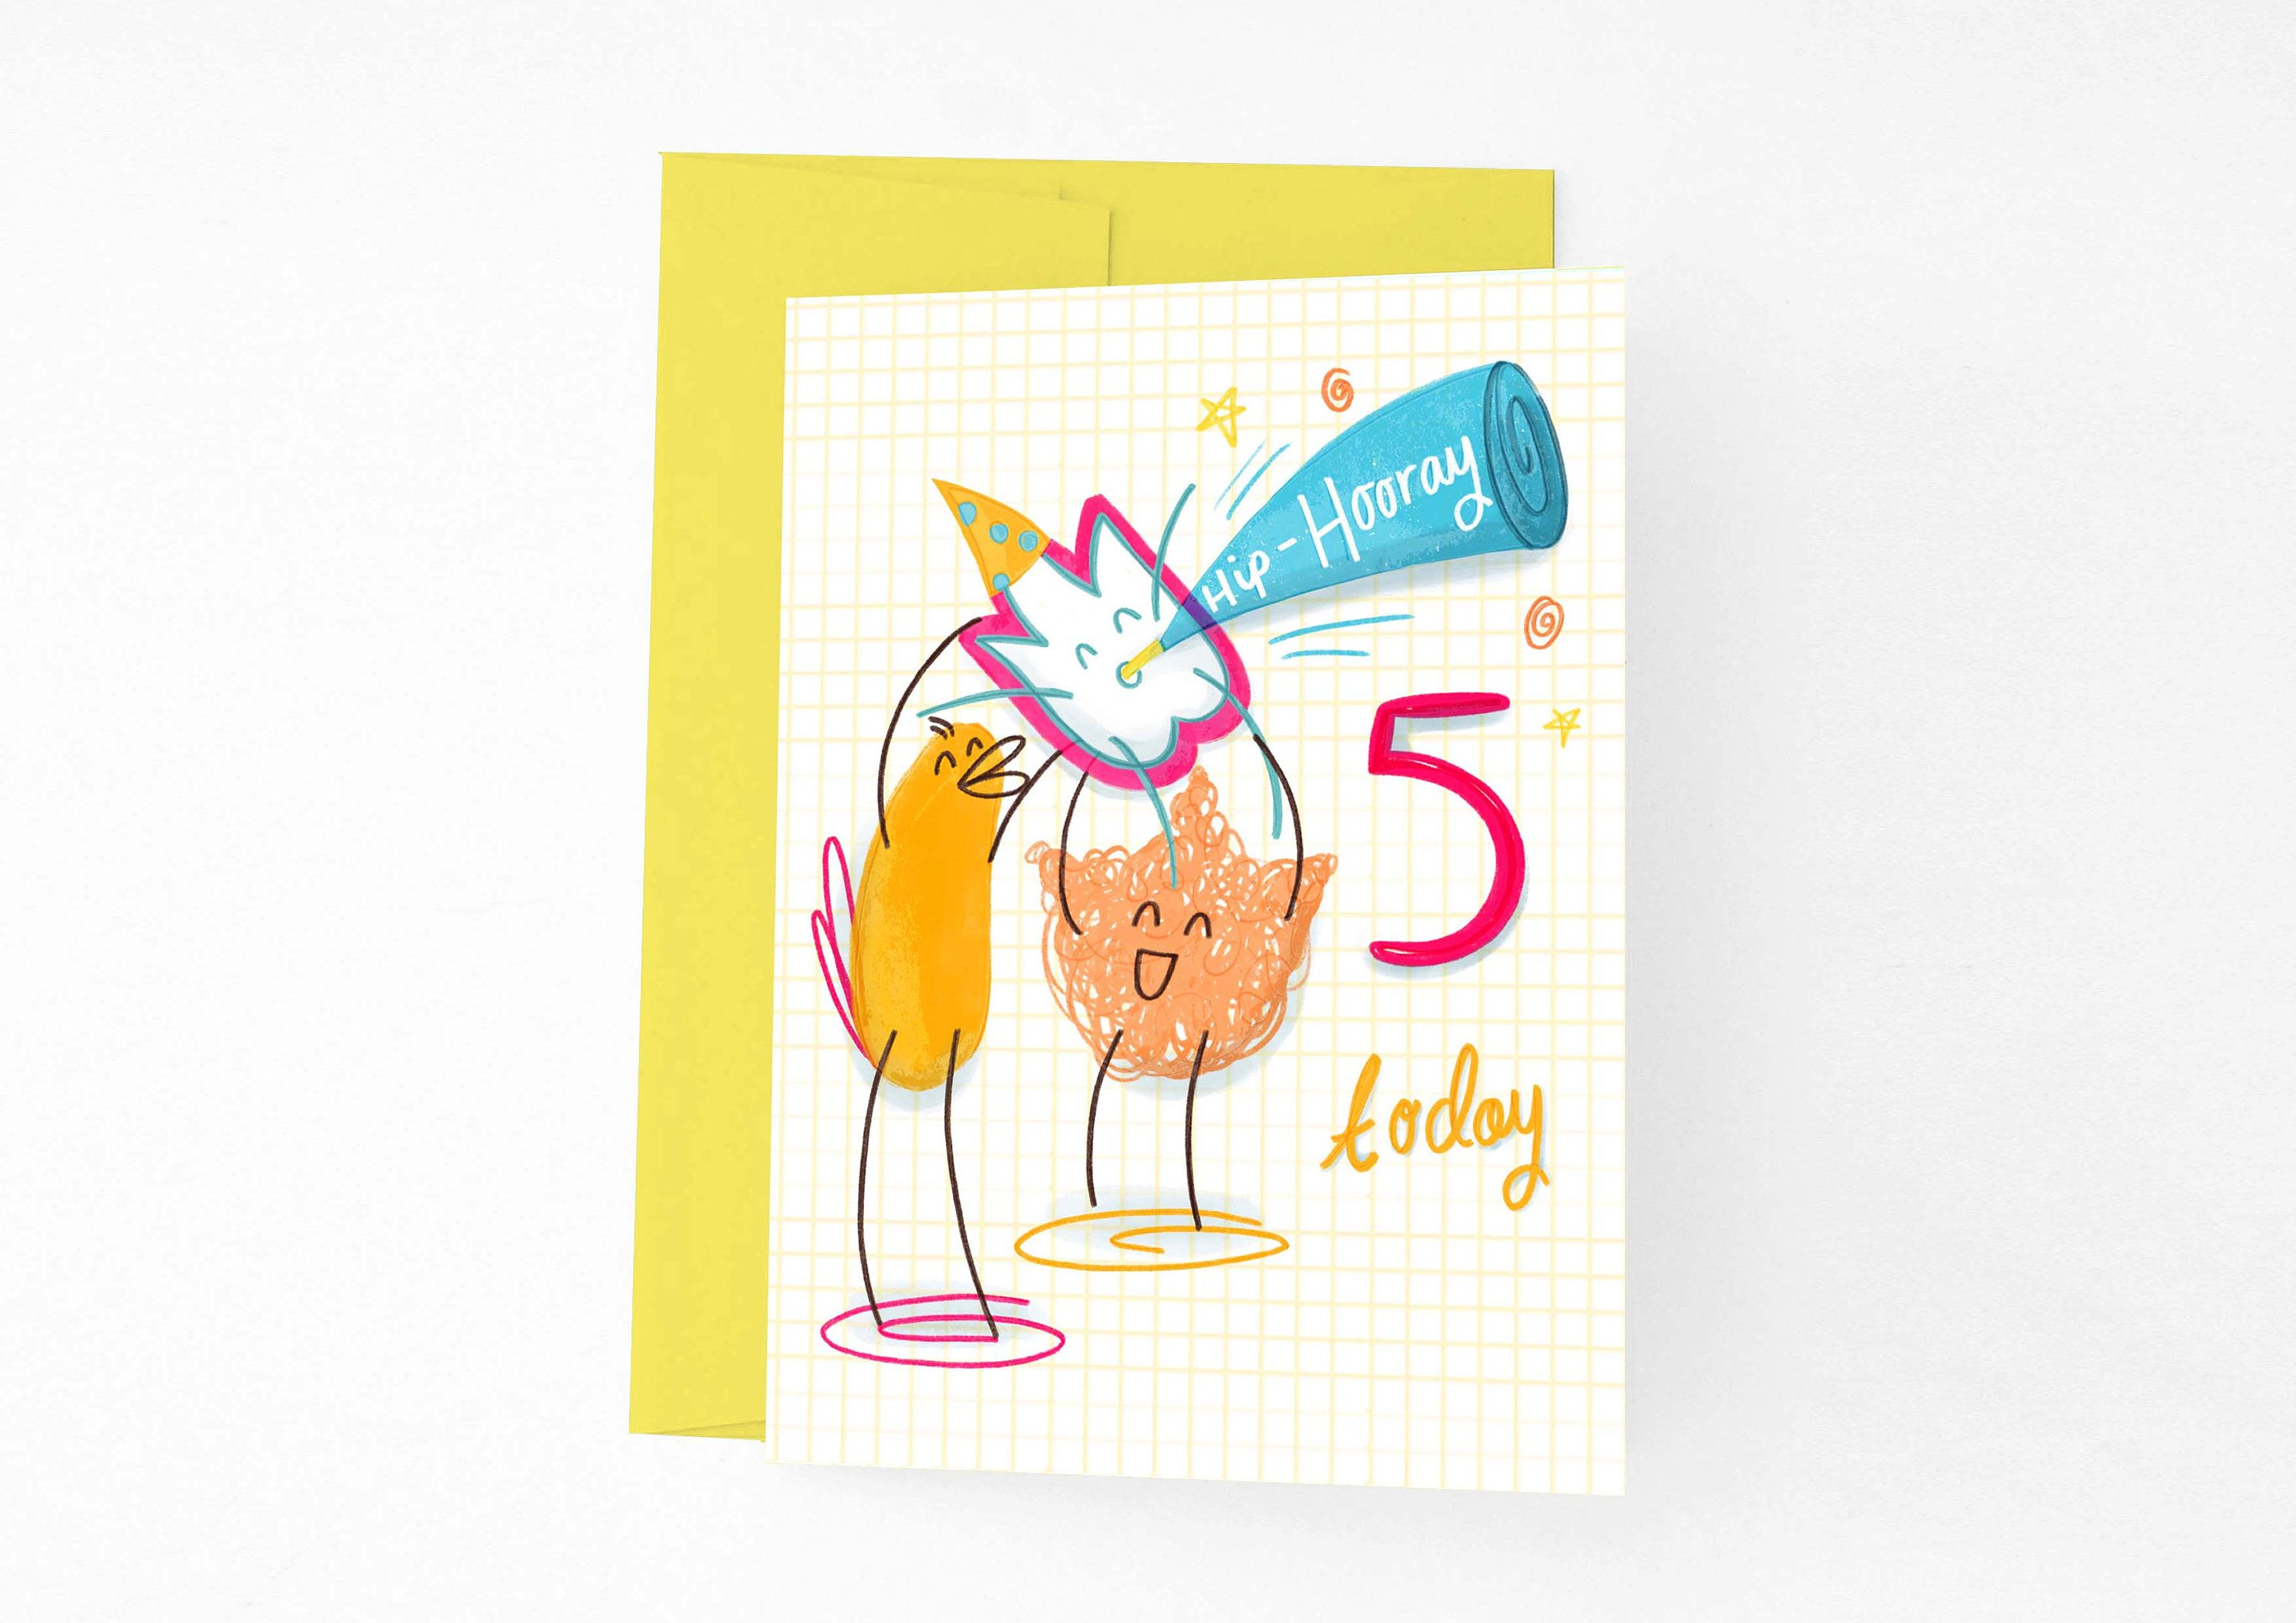 Hip hooray youure today birthday card illustrated kids animated